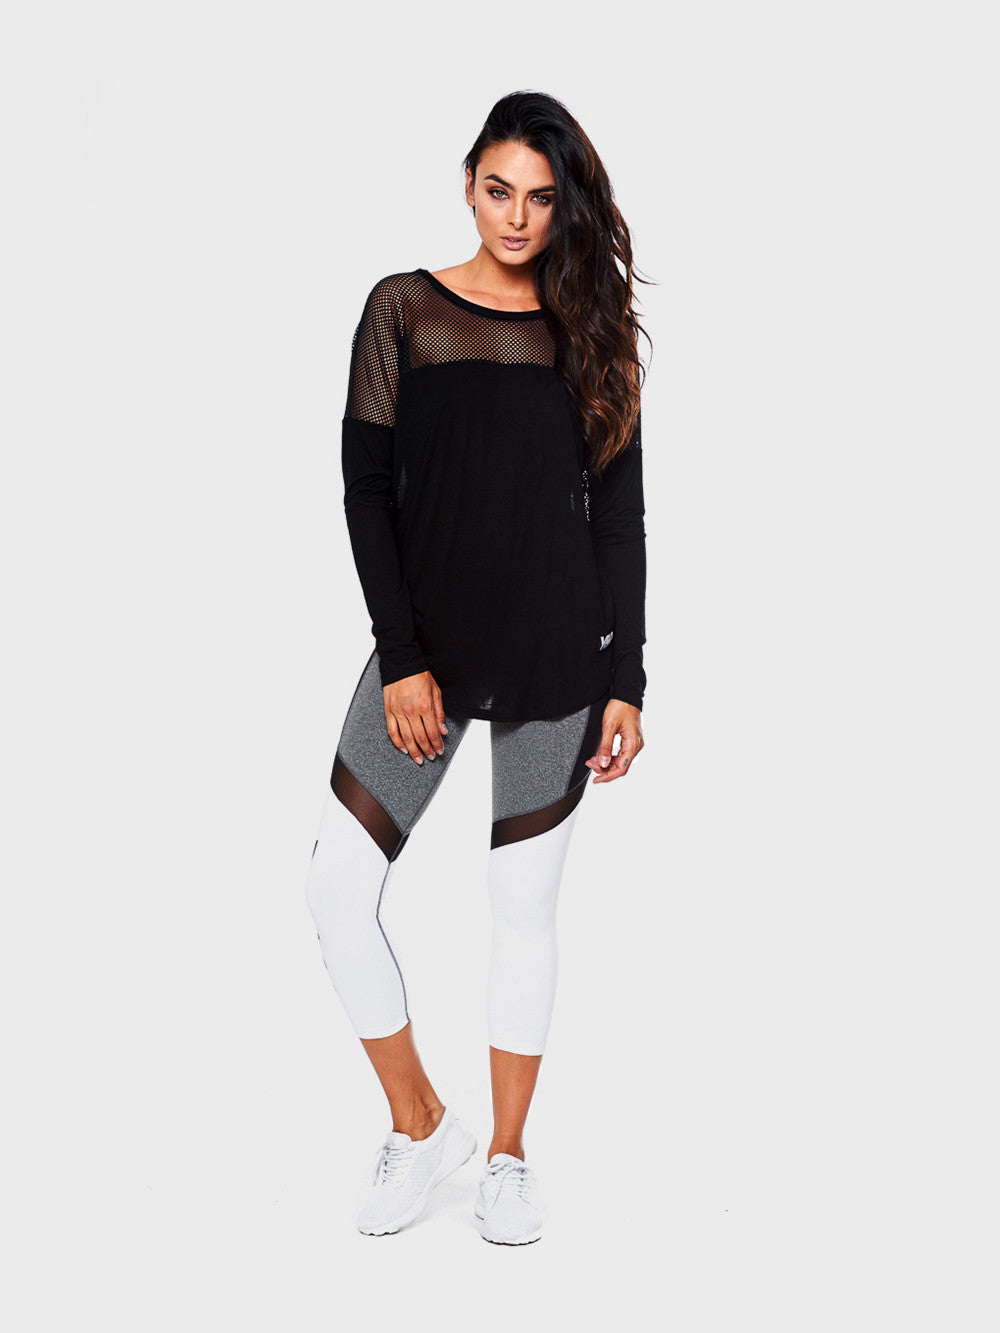 Shutter Contested Long Sleeve with Mesh Top